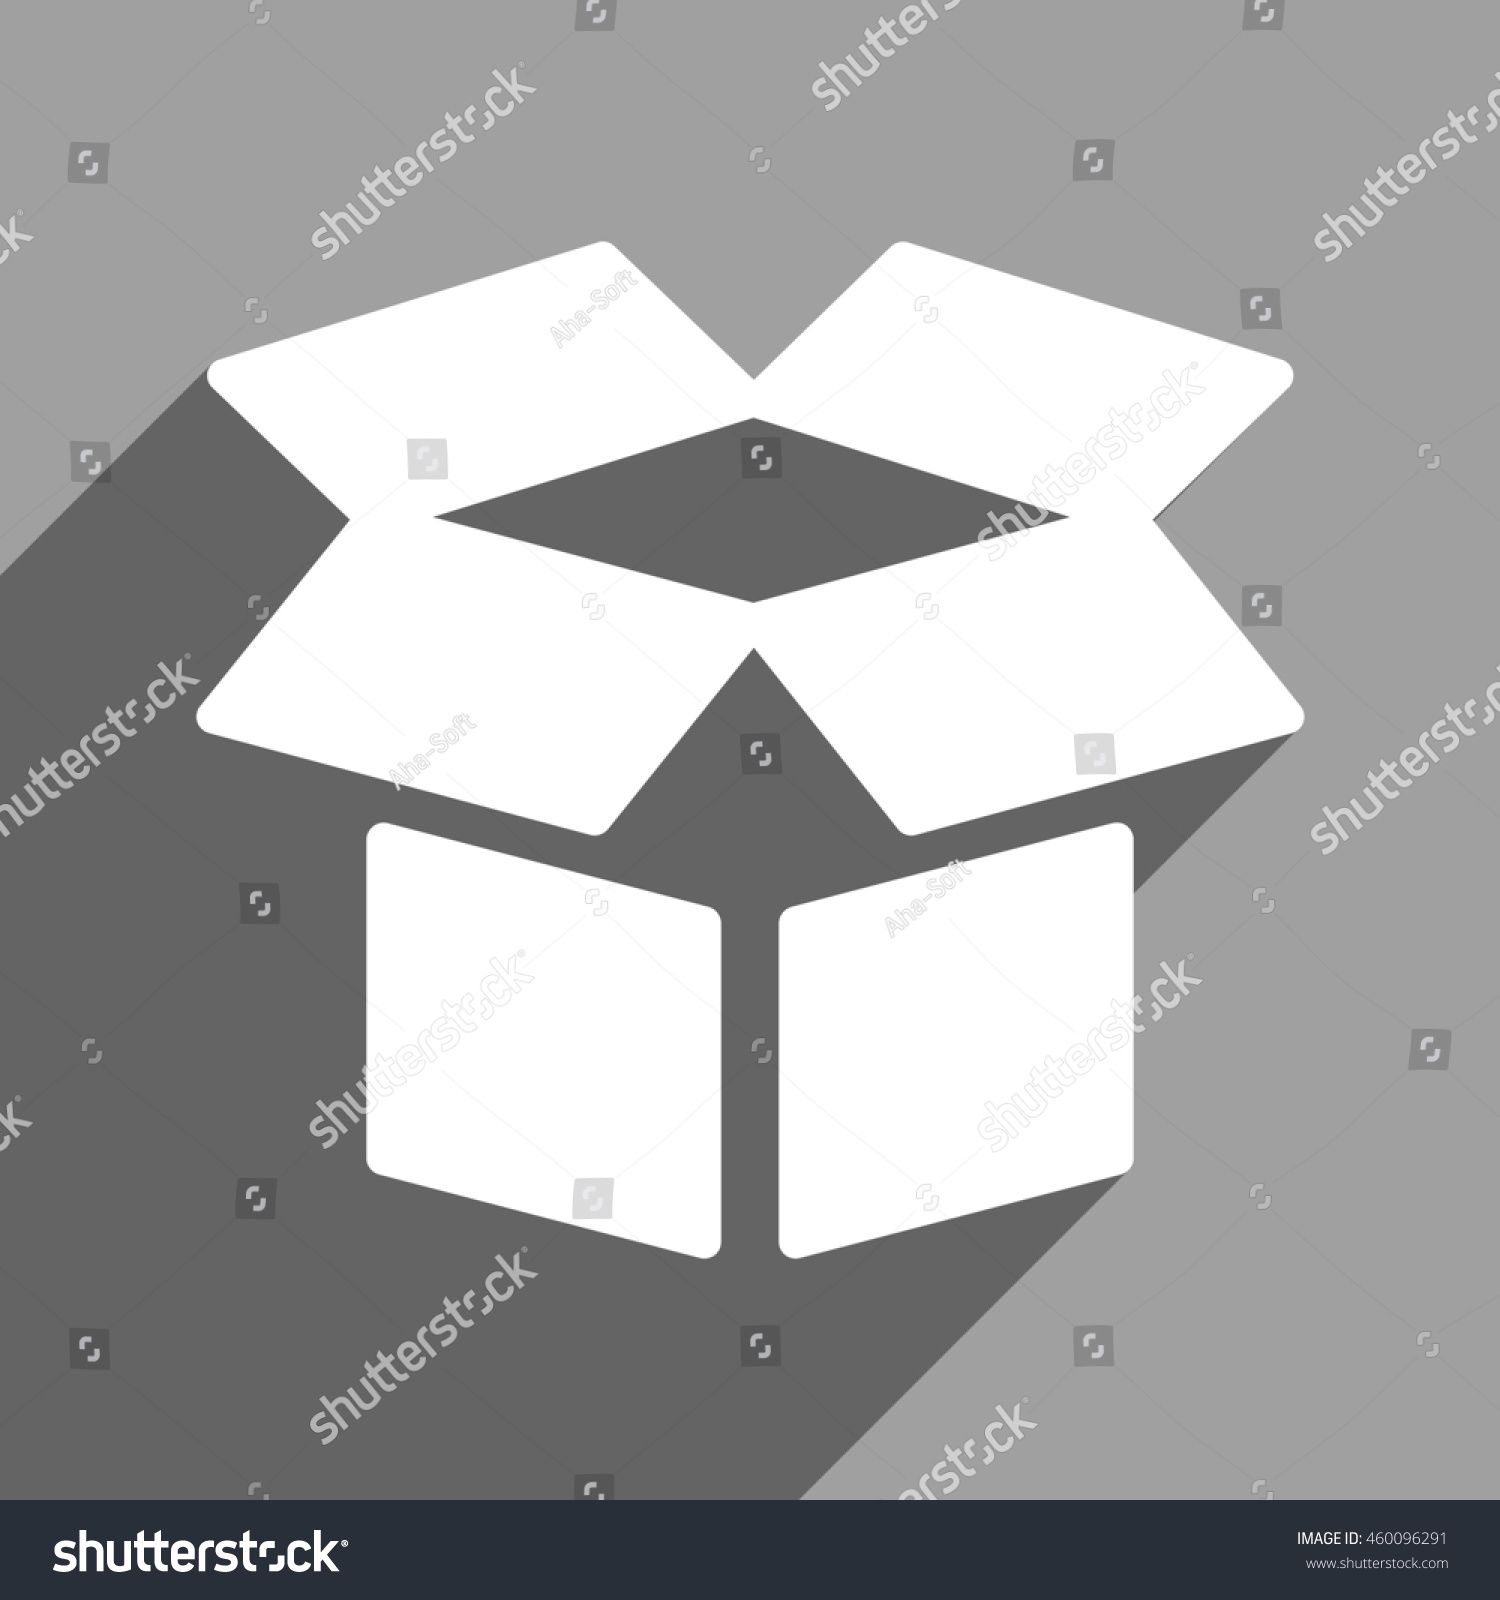 Open box long shadow glyph icon stock illustration 460096291 open box long shadow glyph icon style is a flat open box white iconic symbol biocorpaavc Choice Image